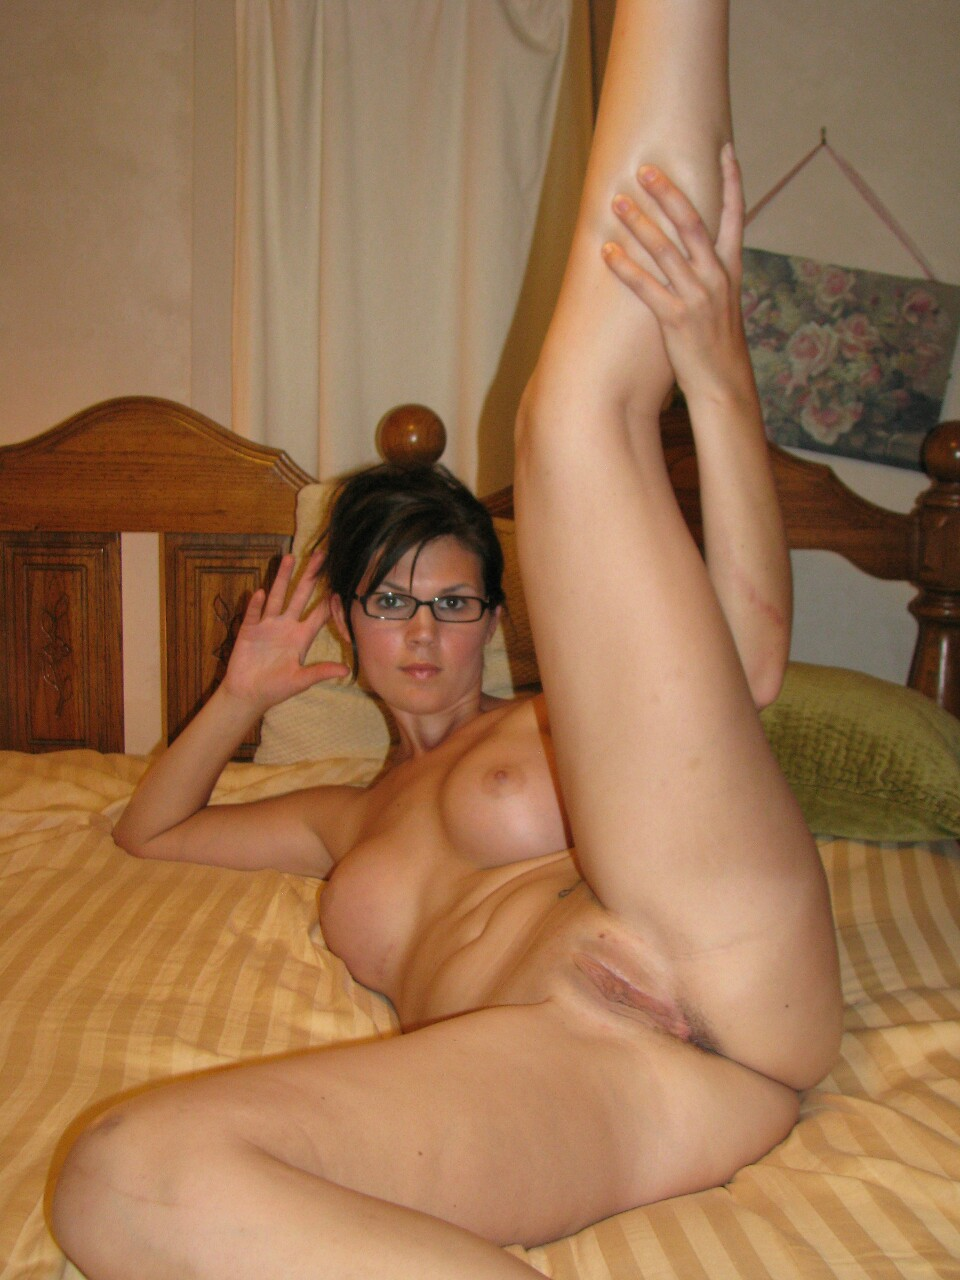 Nudes spread hot leg